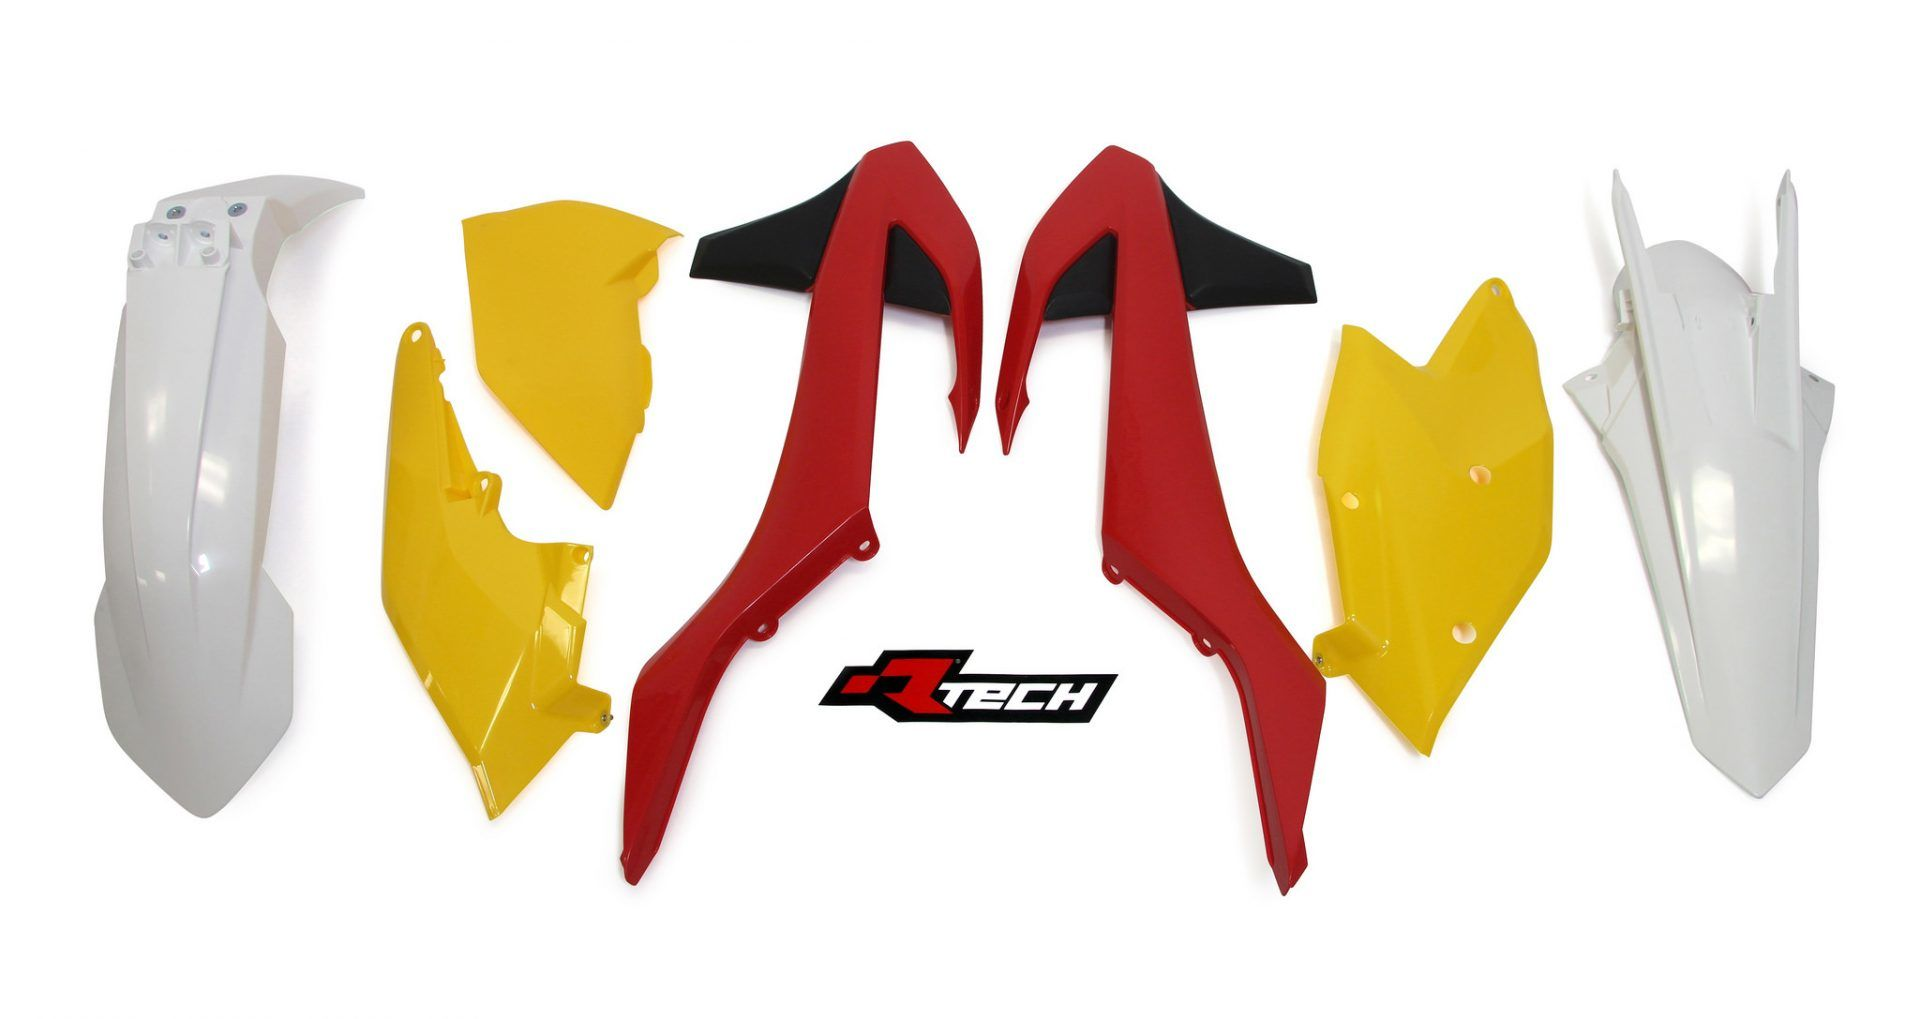 Neon yellow kit rival ink design co custom motocross graphics - Rtech Vintage Red Yellow